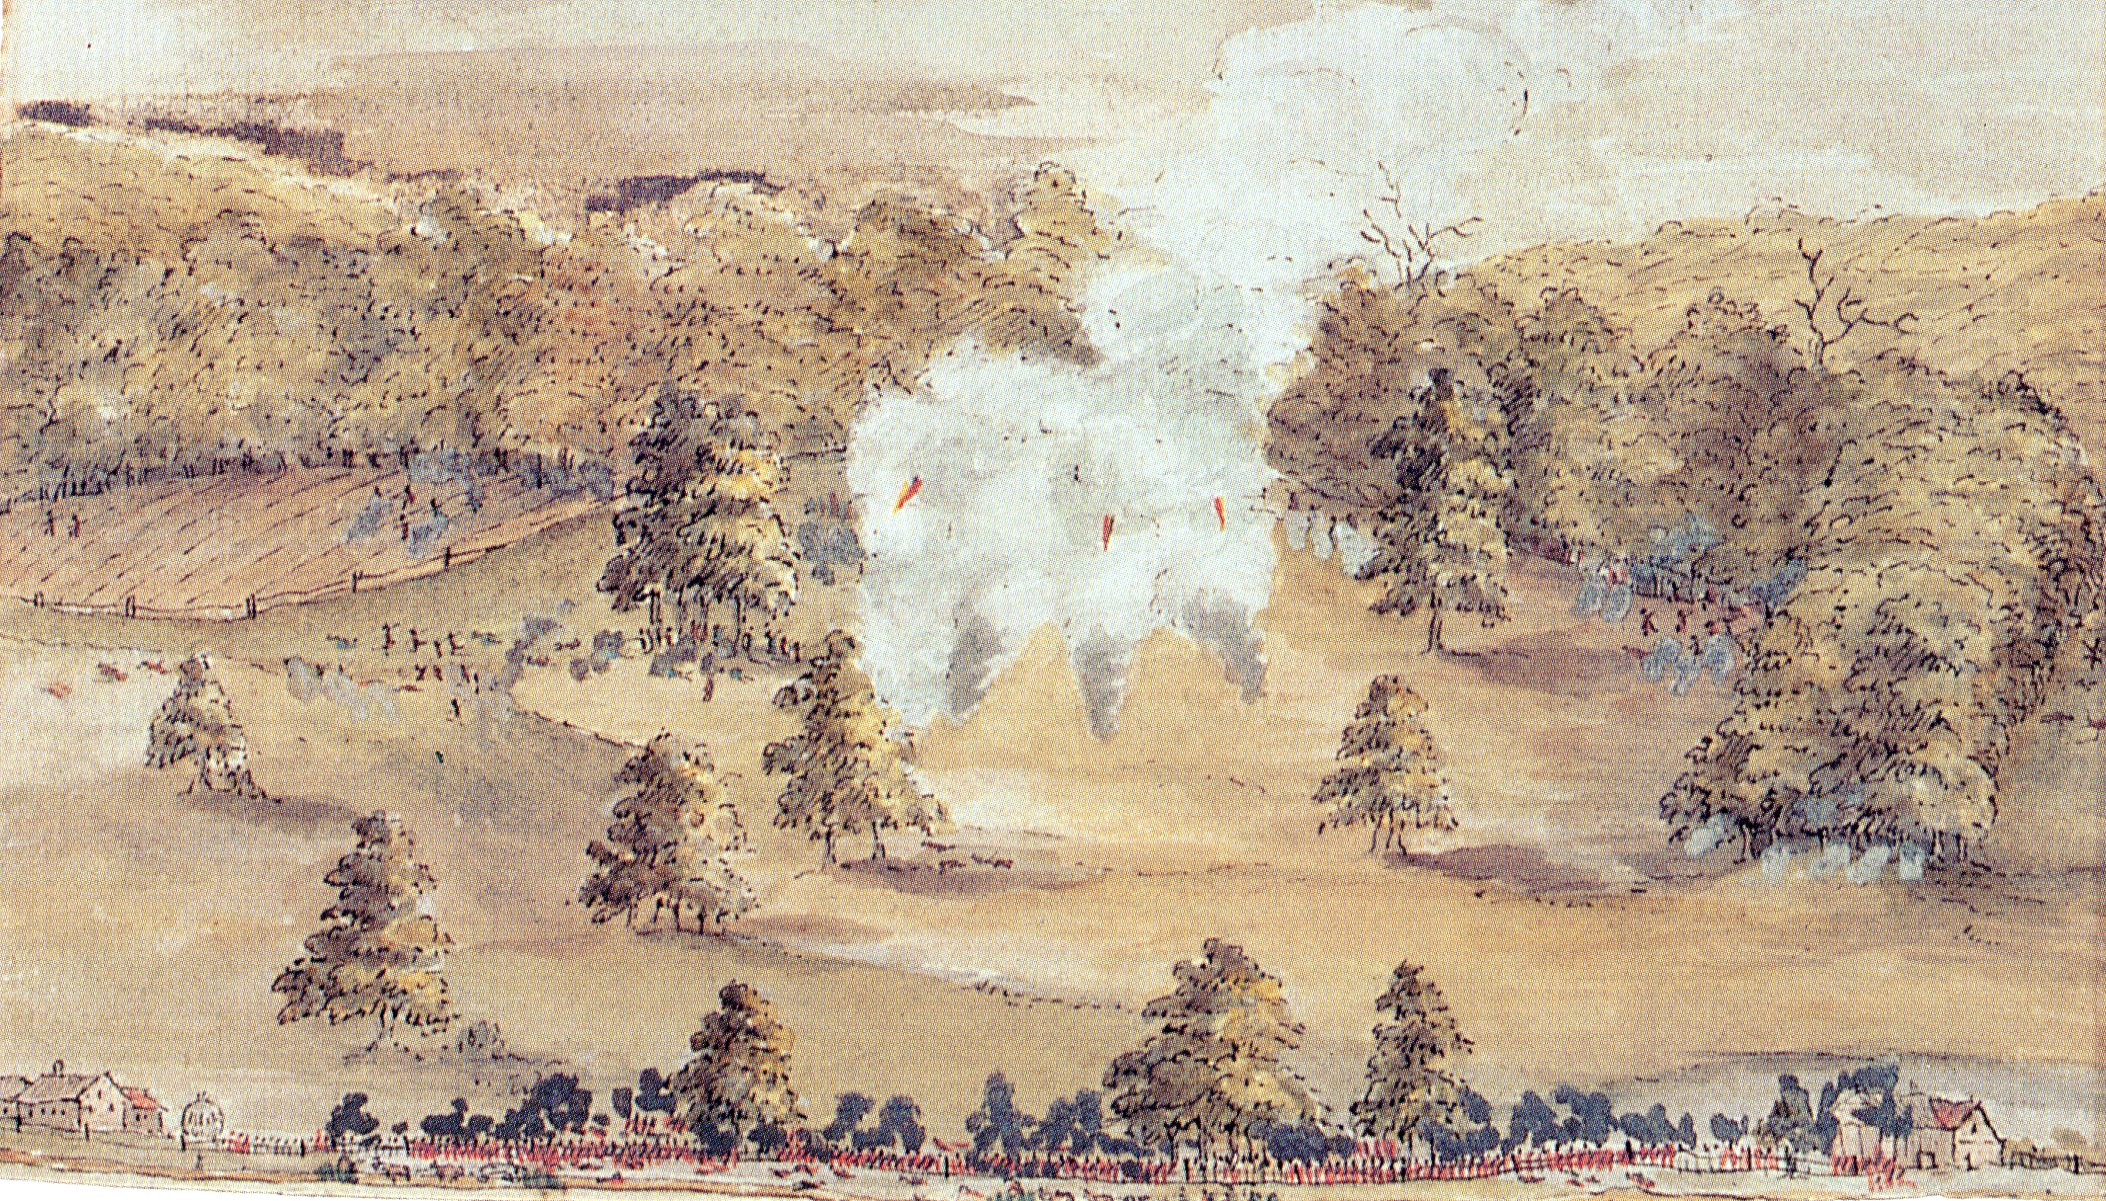 American battery firing on British Foot Guards as the British begin their attack on General Sullivan's Division at the Birmingham Friends Meeting House during the Battle of Brandywine Creek on 11th September 1777 in the American Revolutionary War: picture by Lord Cantelupe who was present at the battle as an officer of the Coldstream Guards